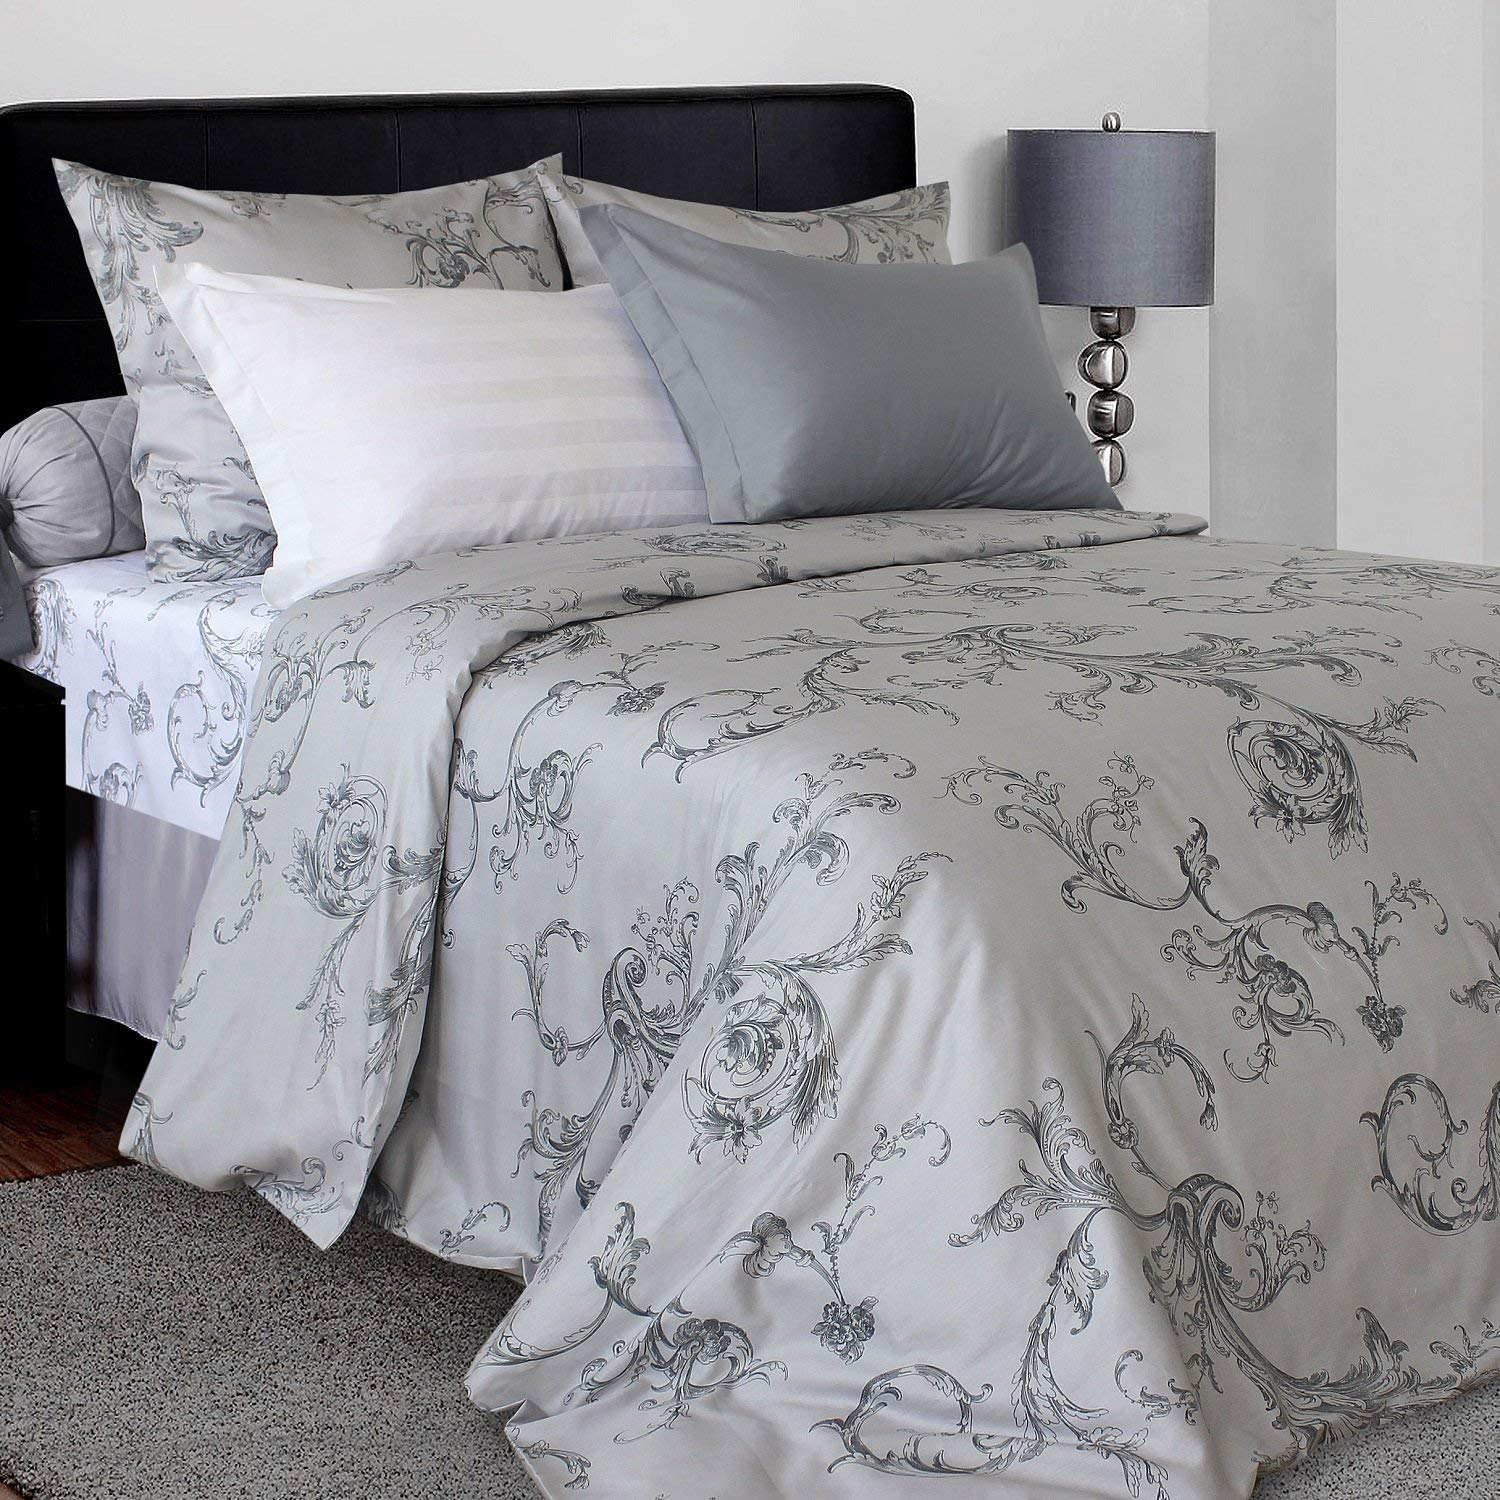 LikeaHome 4-pc Floral Bed Set: 100% Cotton Sateen Duvet Cover, Fitted Sheet & Pillowcases - Duvet Button Closure and Ties, Soft & Silky Uvisni Bedding Collection Made in Europe (King Size, Grey)